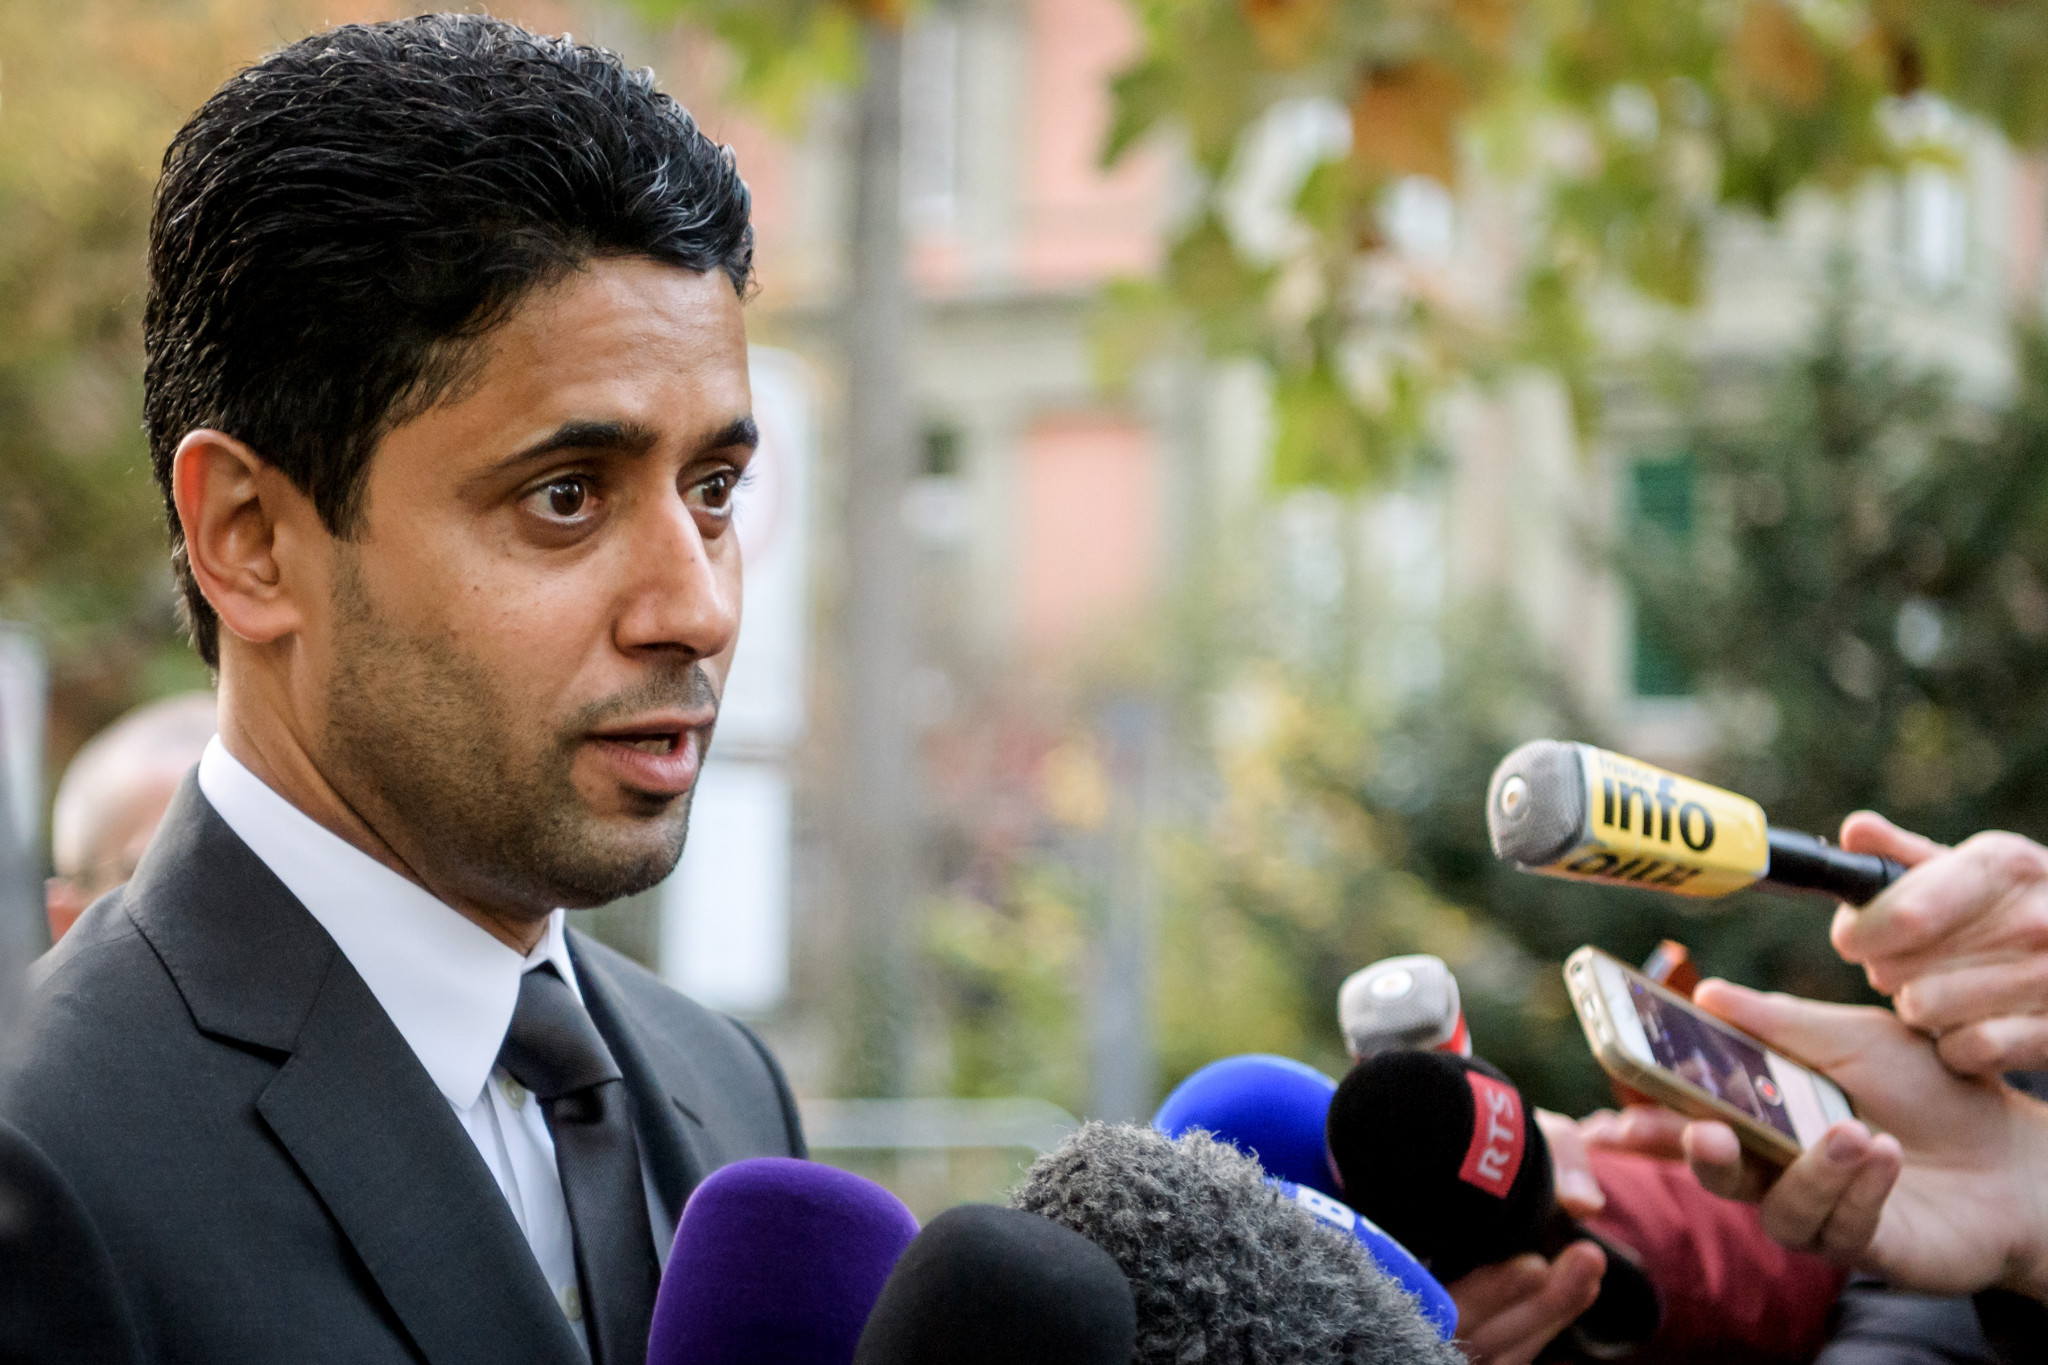 Qatari was in talks to purchase company accused of bribing officials, court hears during FIFA trial